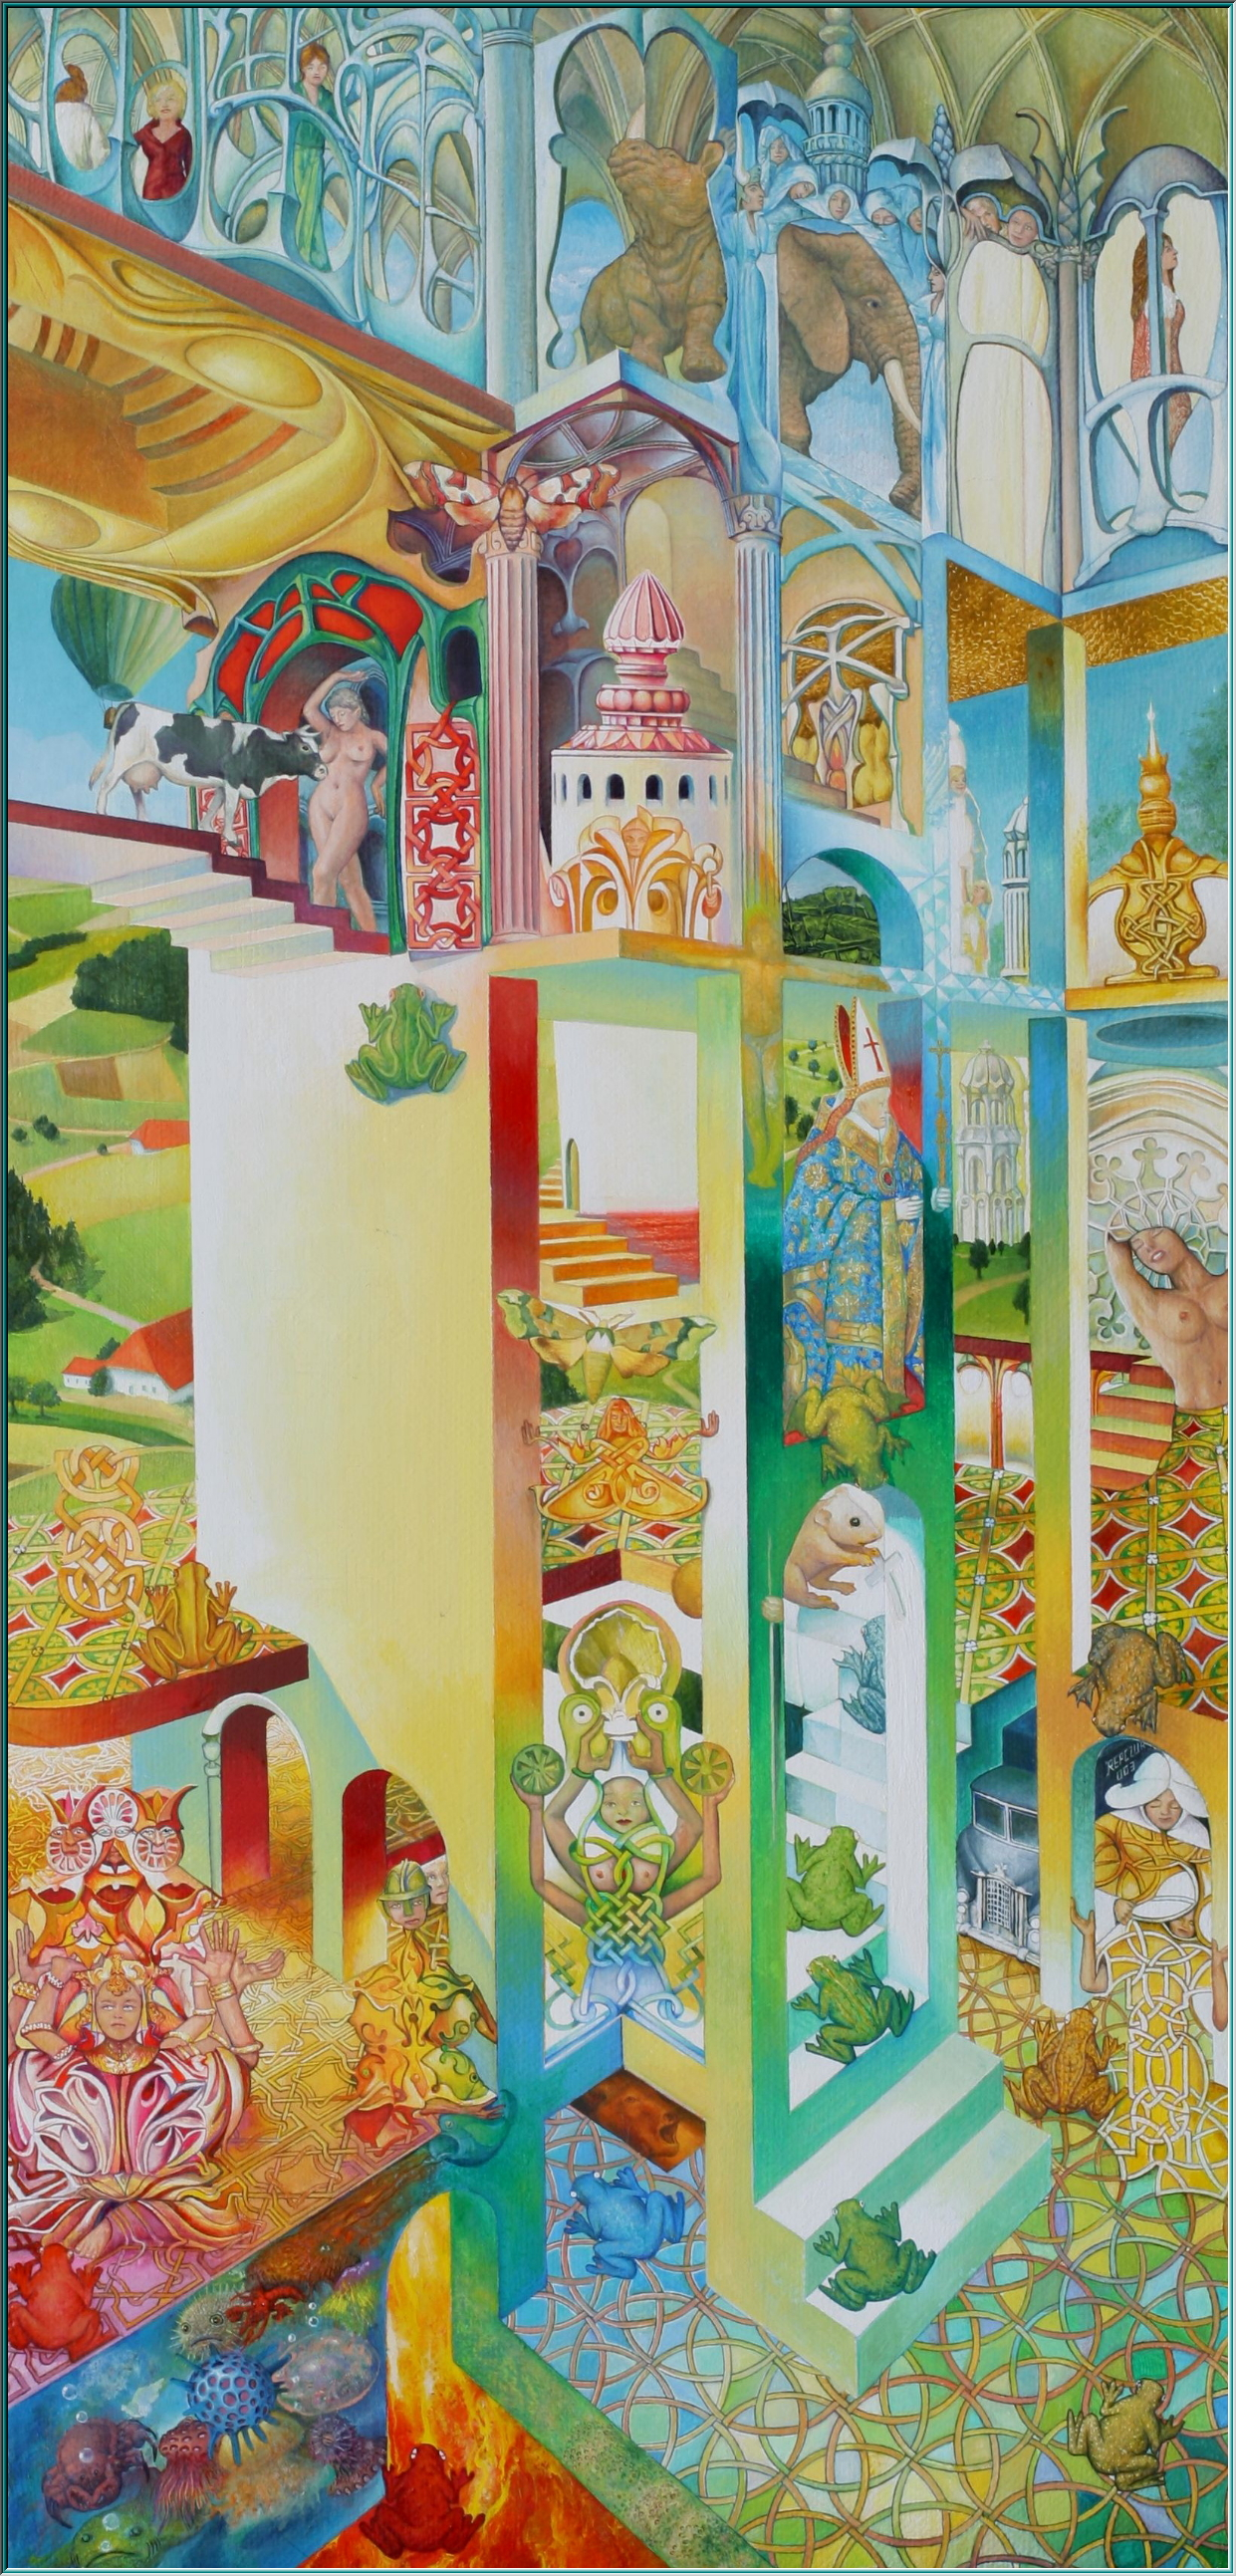 Ziggurat, Ishtar Gate, Babylon, the palace of the sky, the Tower of Babylon, Gilgamesh, flood, oil paintings Surrealism